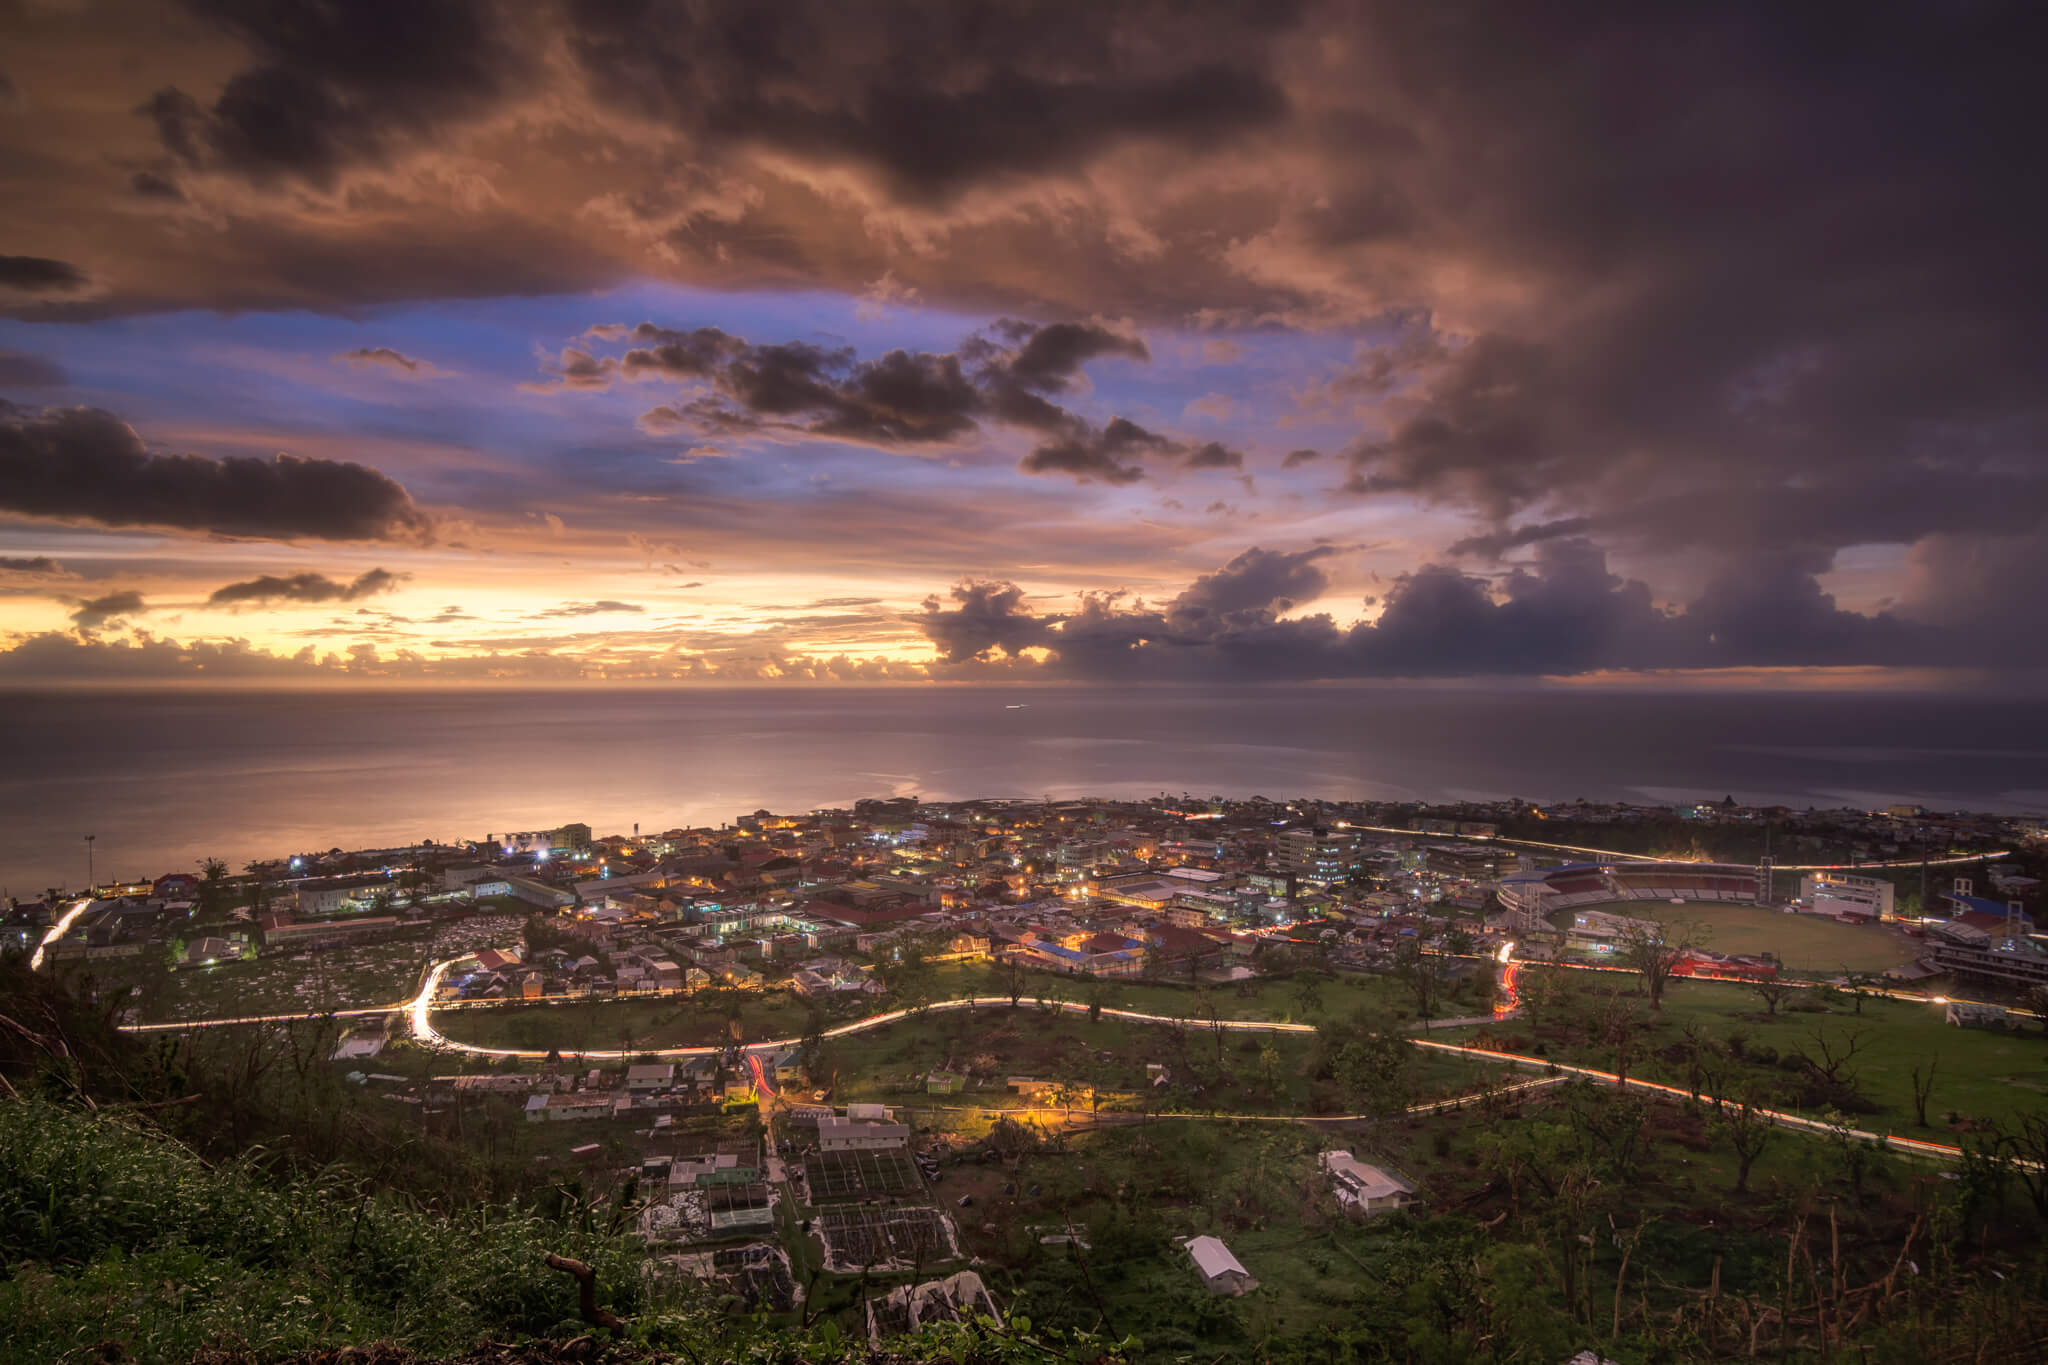 © 2018 Yuri A Jones | Ominous Sunset, captured from Morne Bruce, Dominica